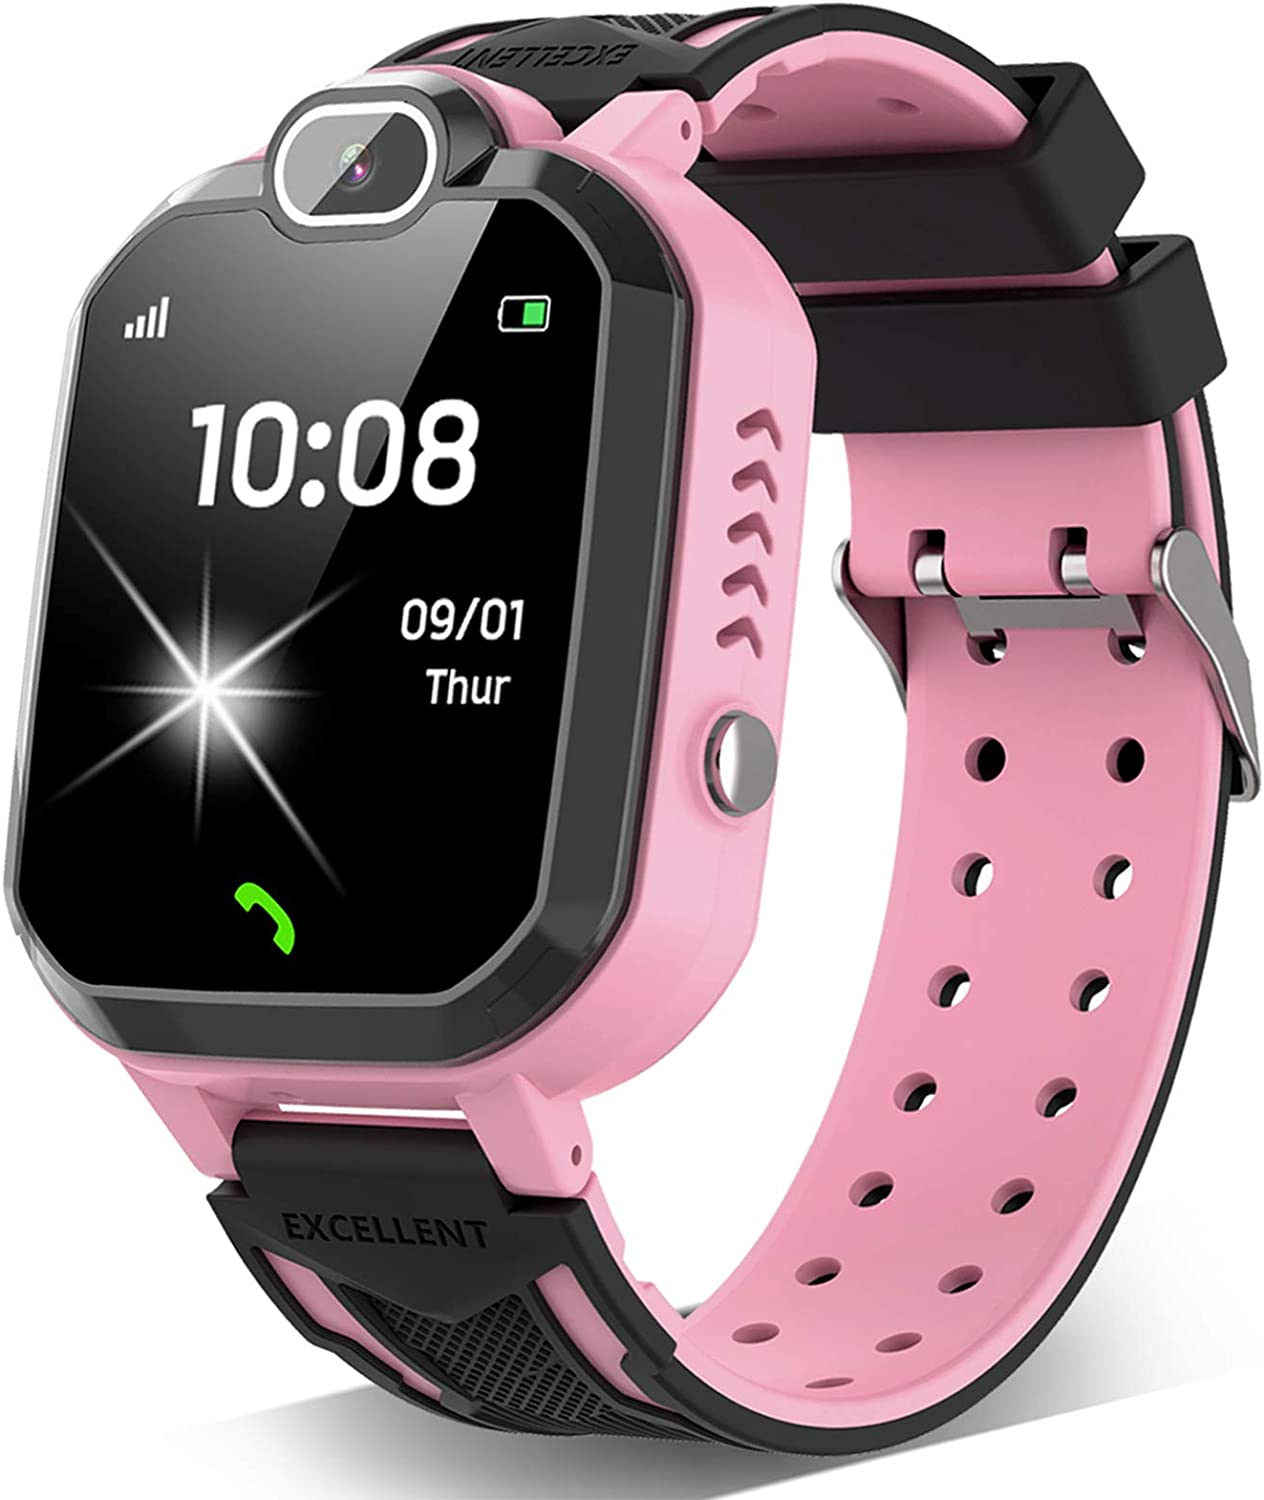 Kids Smart Watch for Boys Girls - Kids Smartwatch Phone with Calls 7 Games Music Player Camera Alarm Clock Calculator SOS Calendar Touch Screen Children's Smart Watch for Kids Birthday Gifts(Pink)